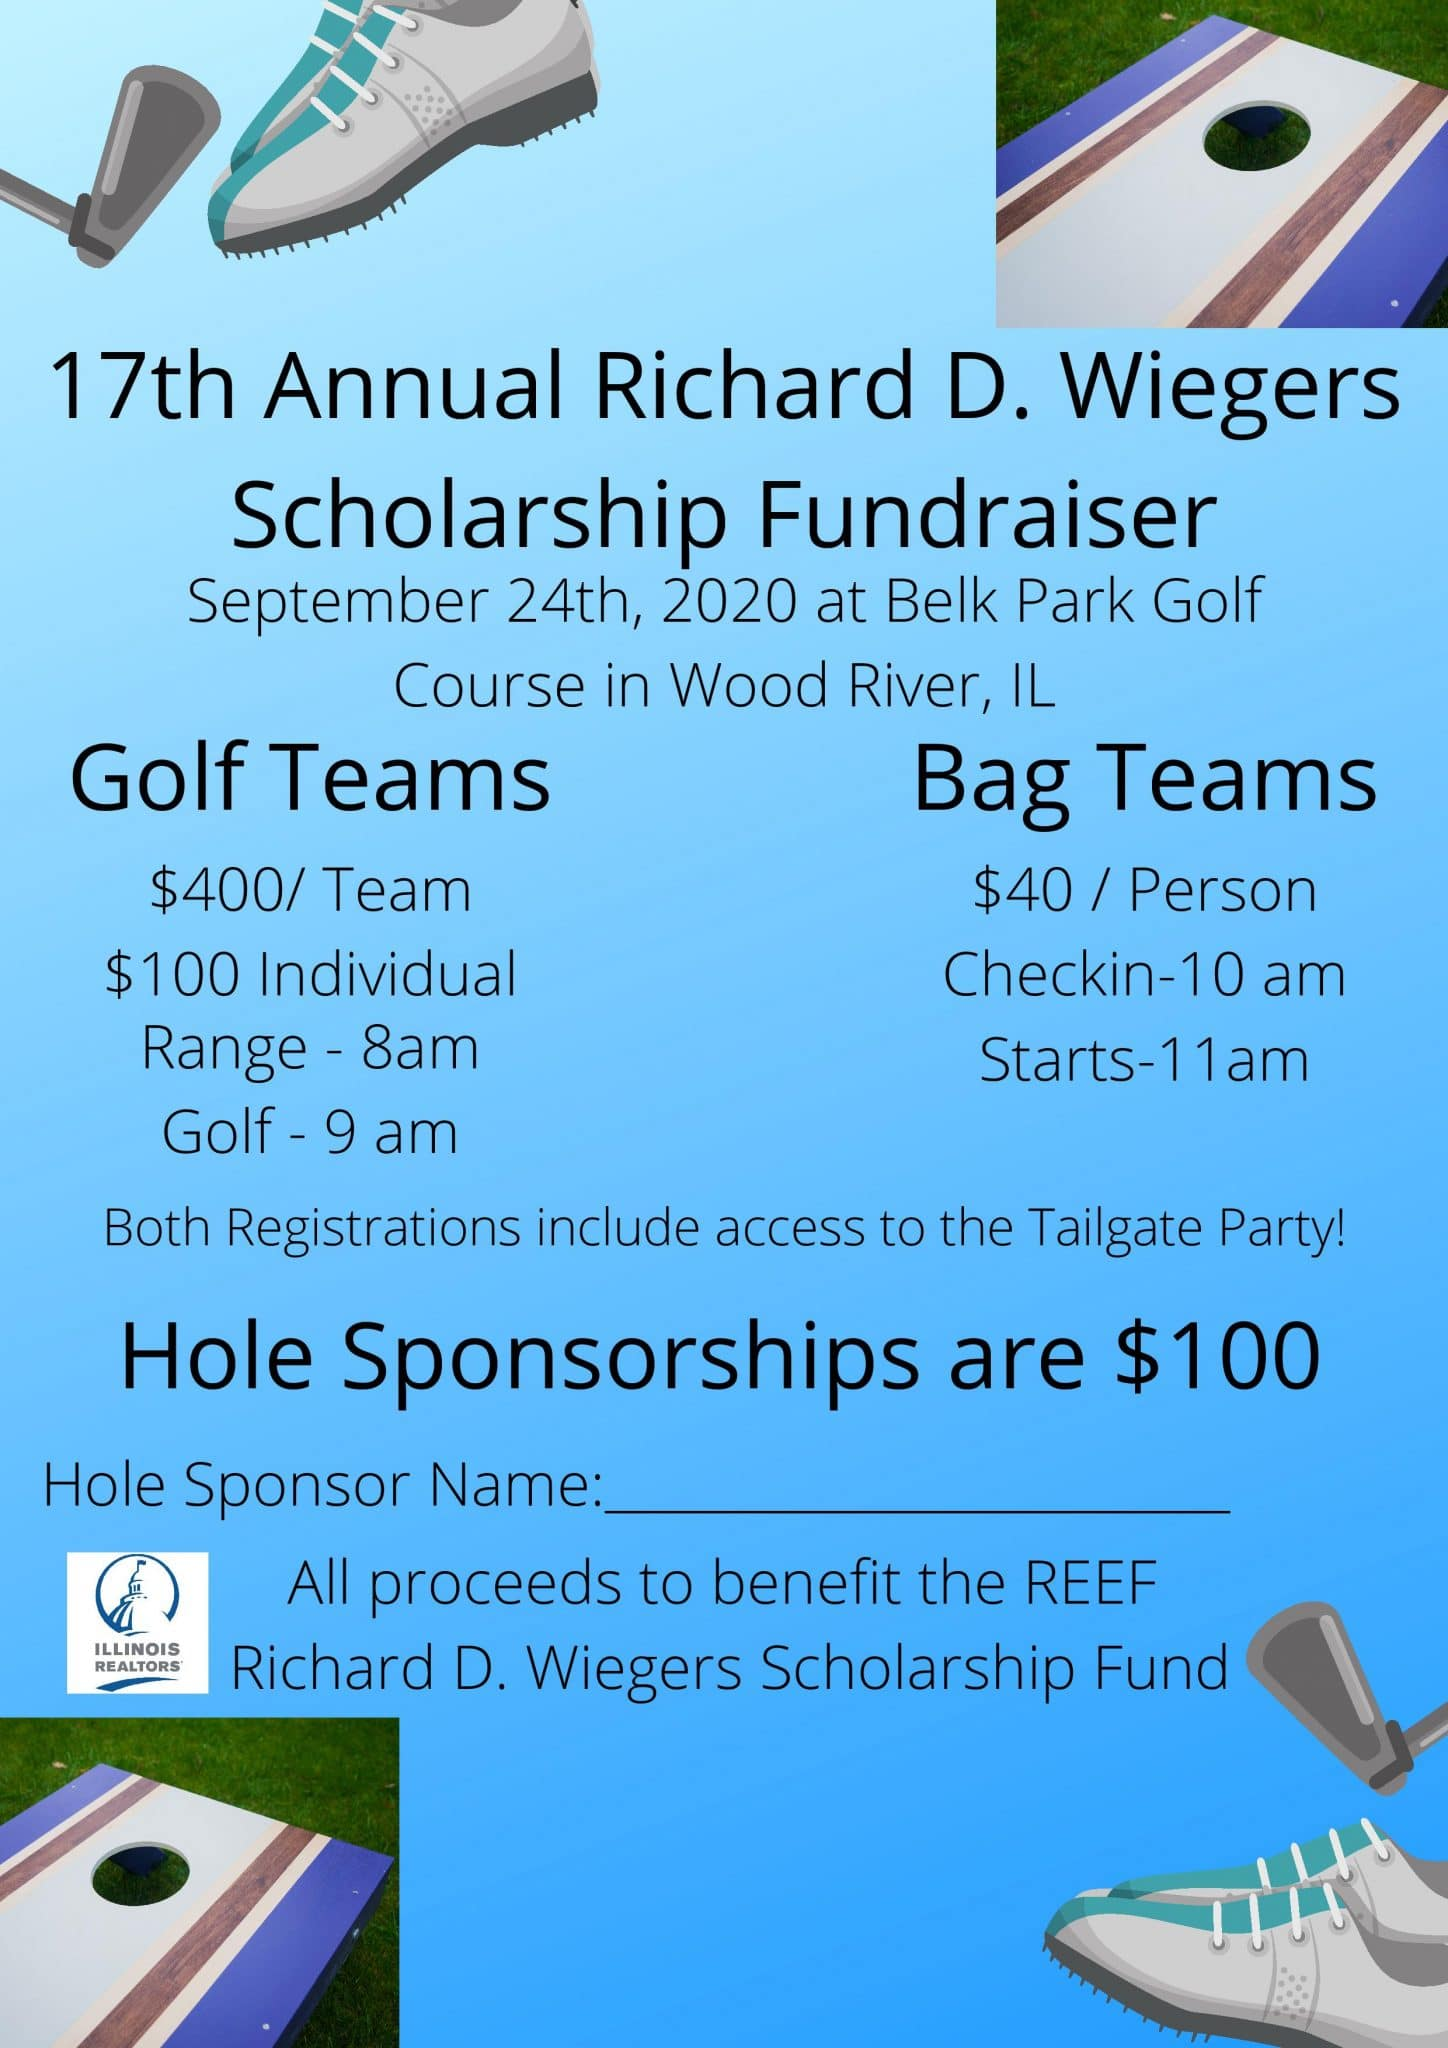 17th Annual Richard D. Wiegers Scholarship Fundraiser